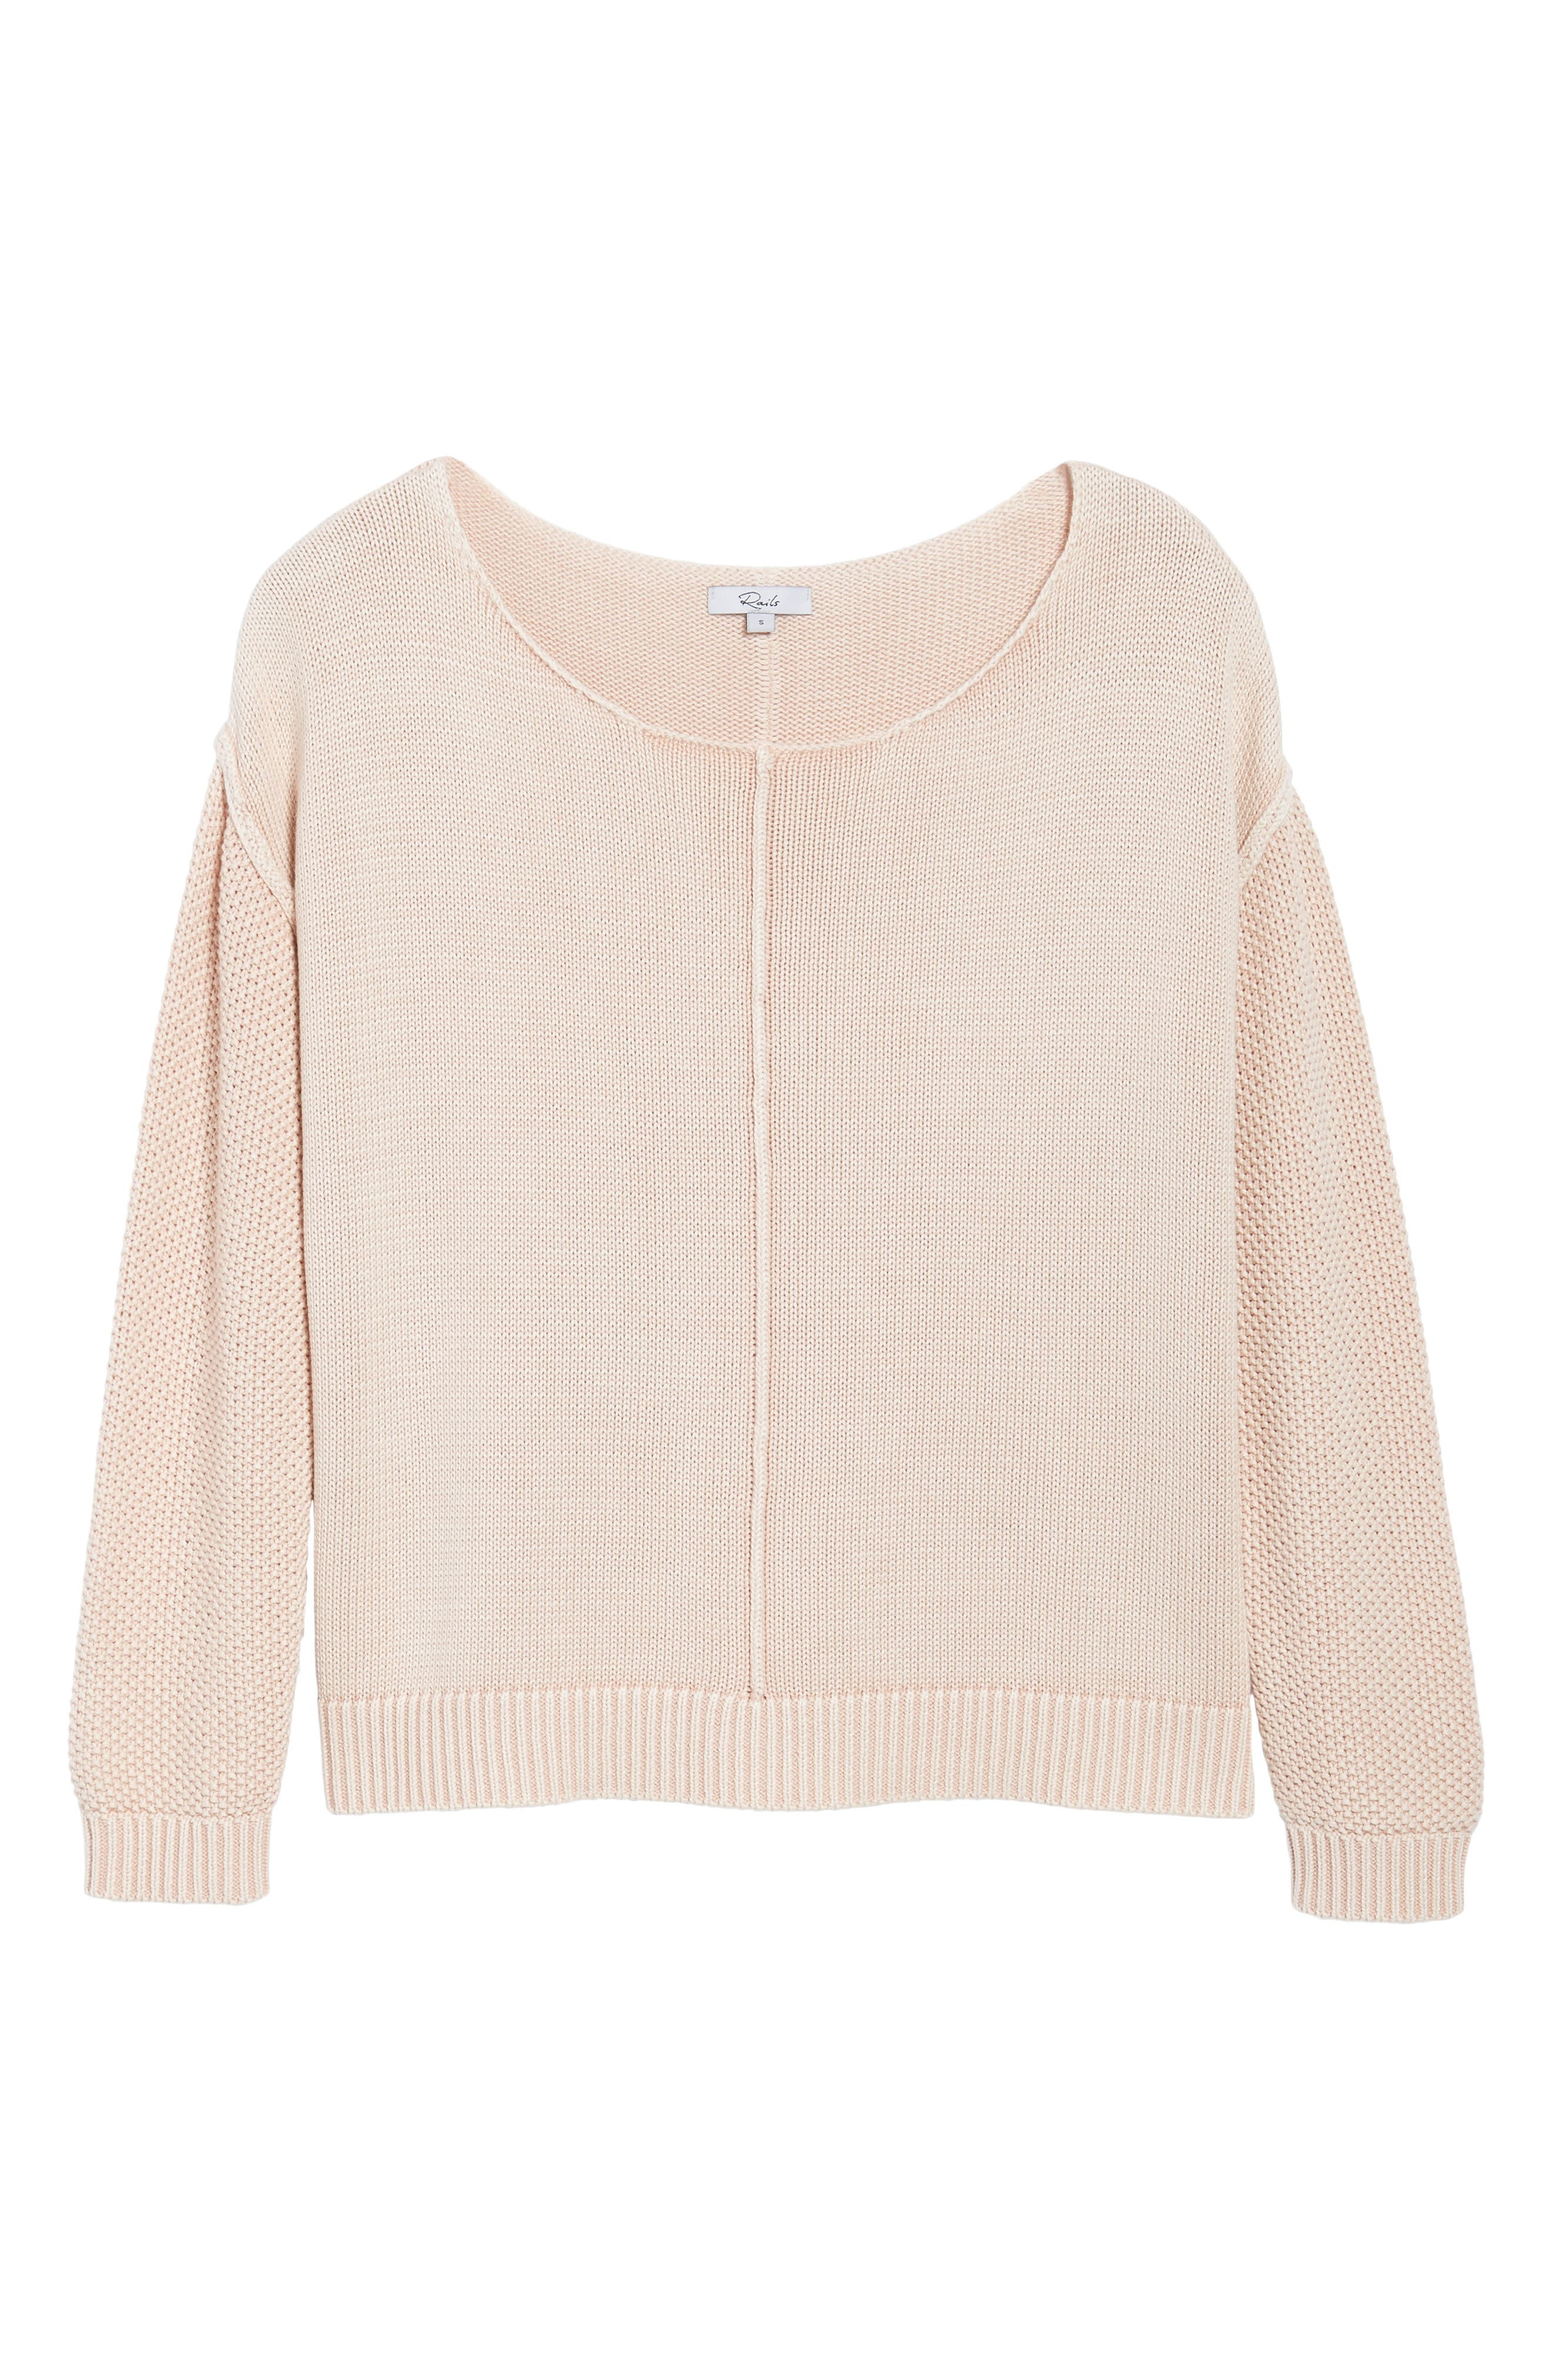 Erin Knit Sweater,                             Alternate thumbnail 6, color,                             Sand Washed Blush